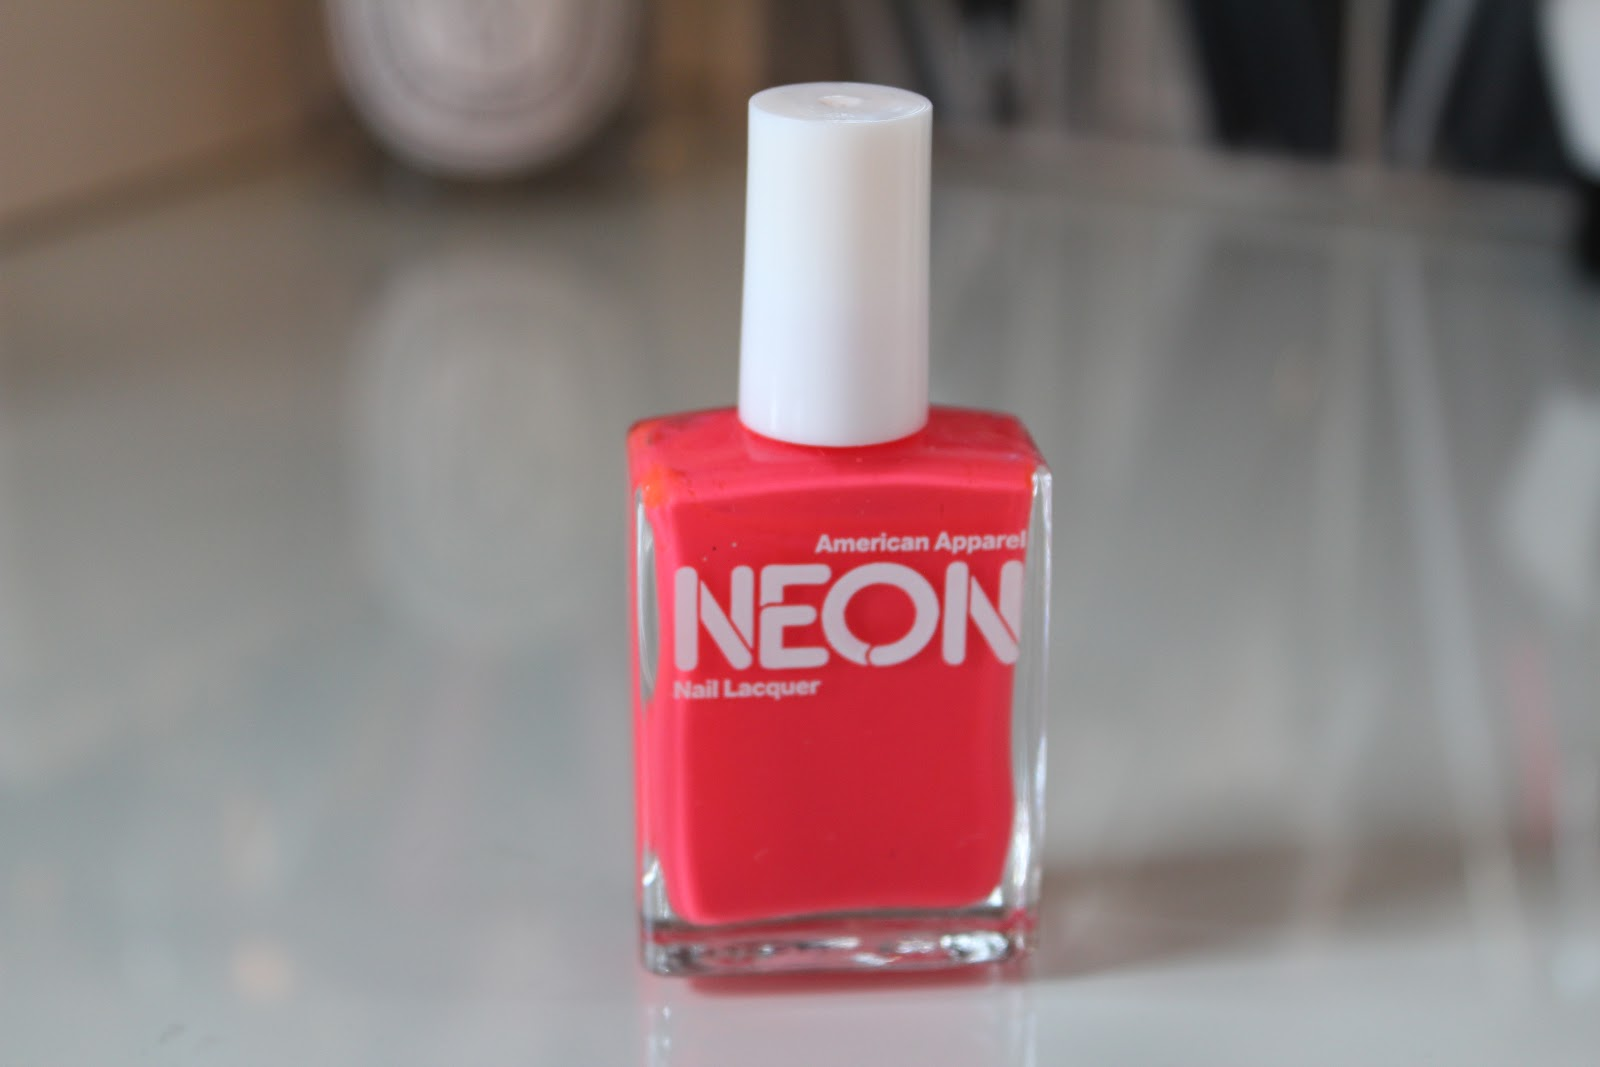 American Apparel Neon Red Nail Polish – Lily Pebbles